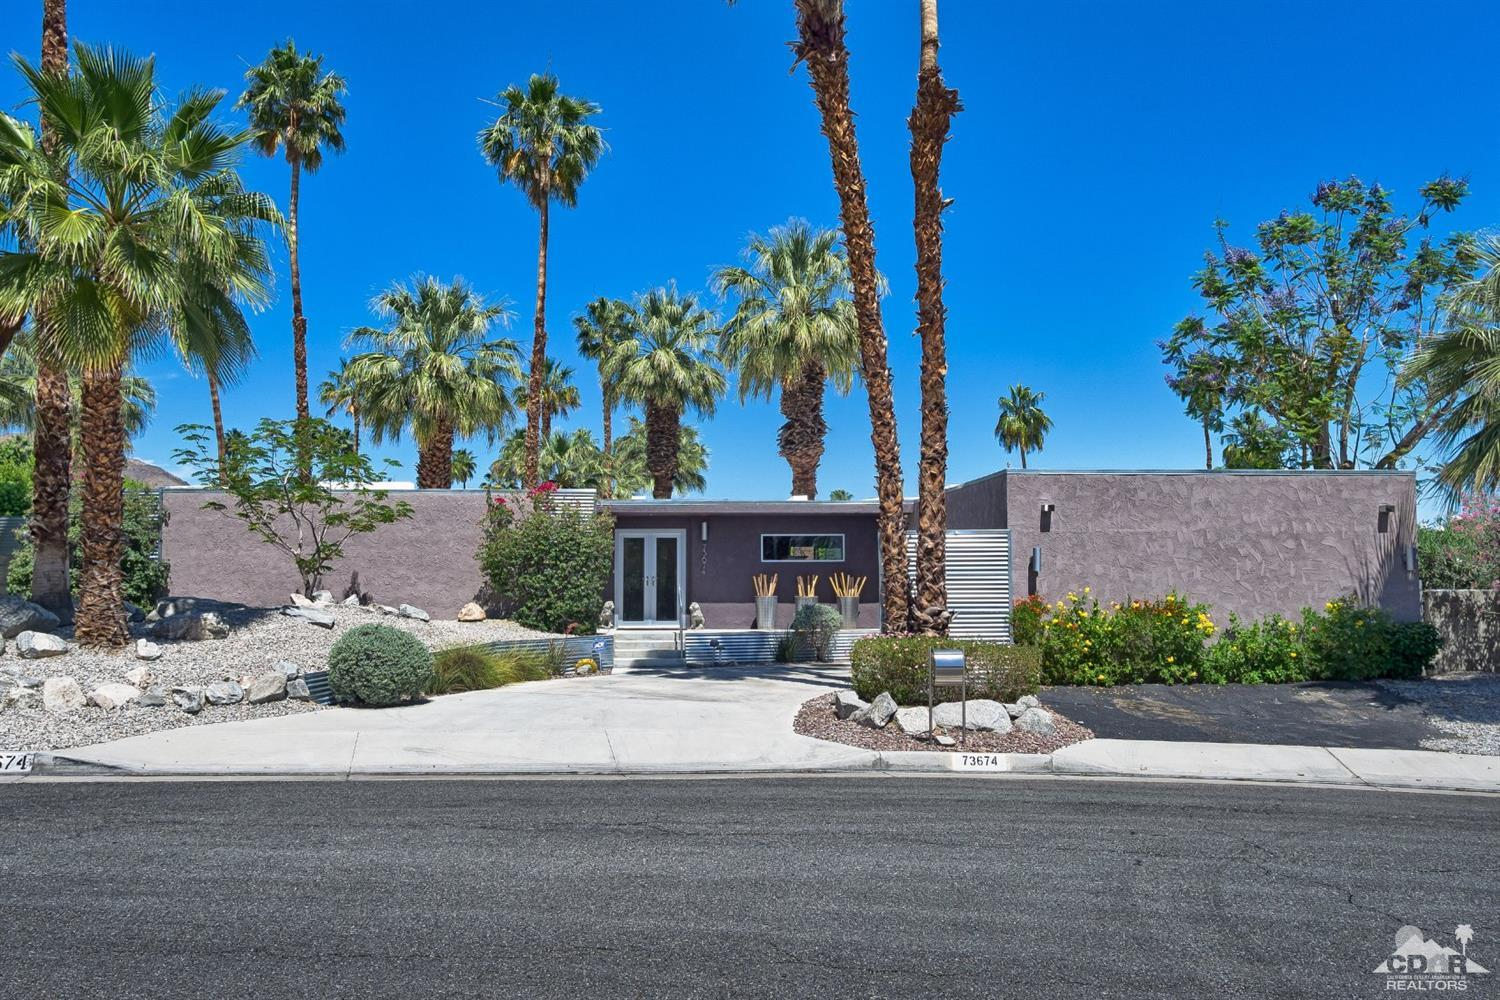 palm desert homes for sale 500 001 to 750 000